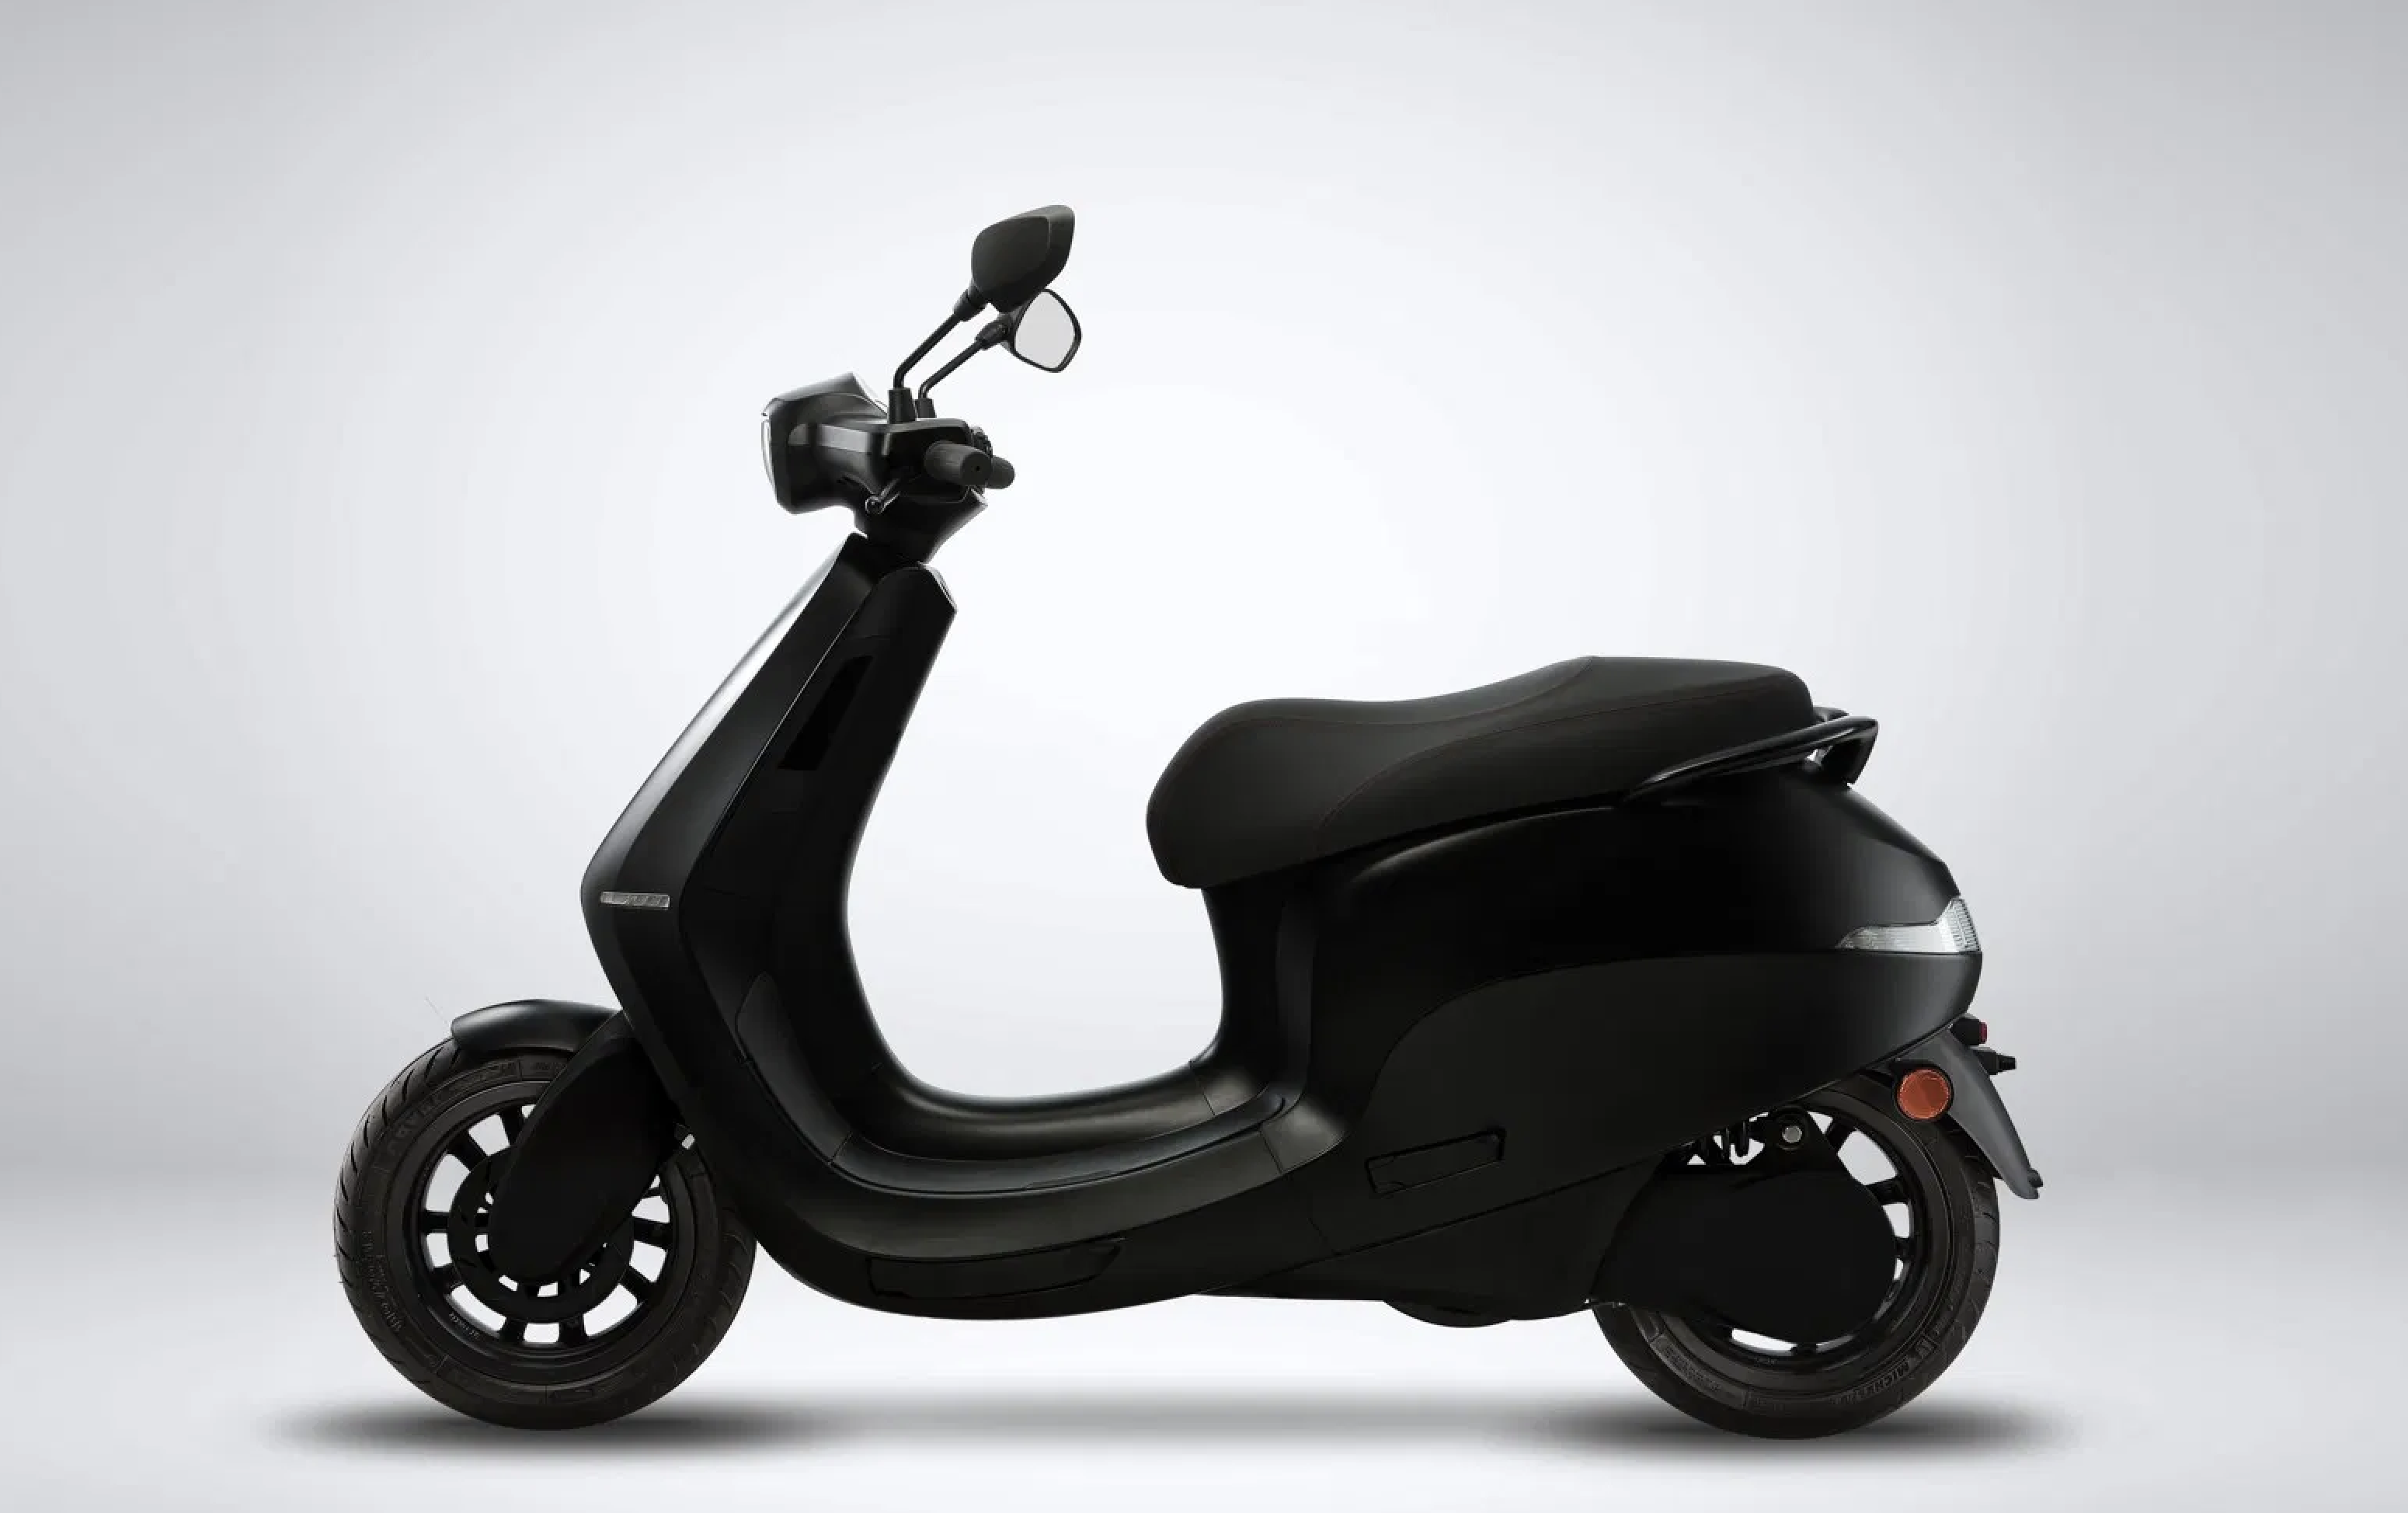 Ola gives first glimpse of new e-scooter